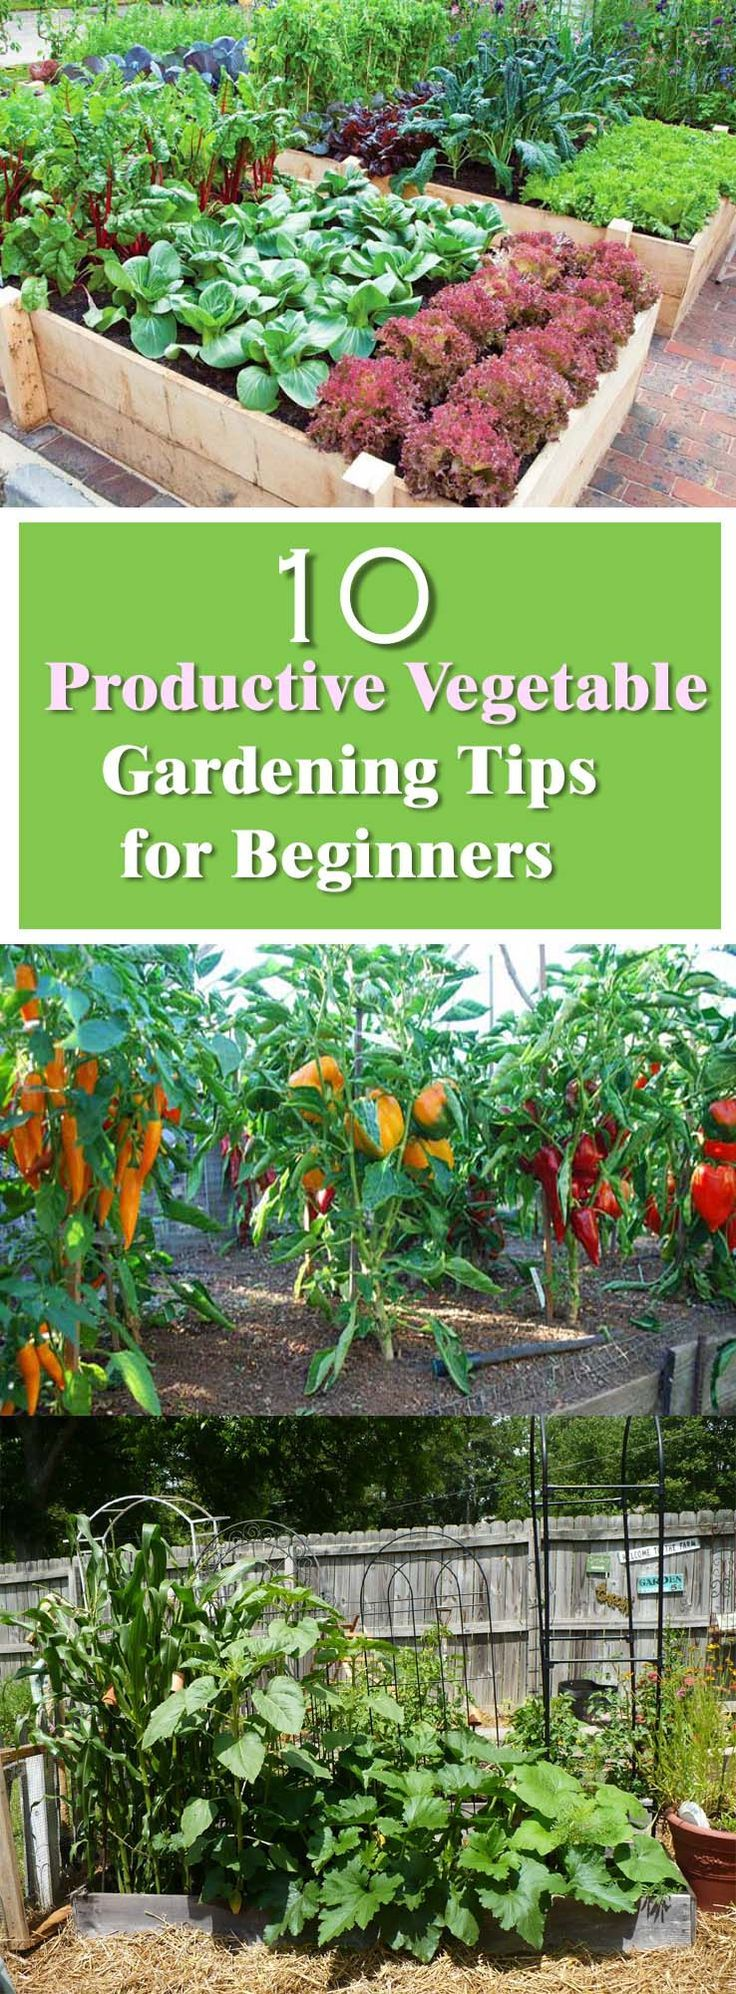 78 Best 1000 images about Beginner Gardening Tips on Pinterest